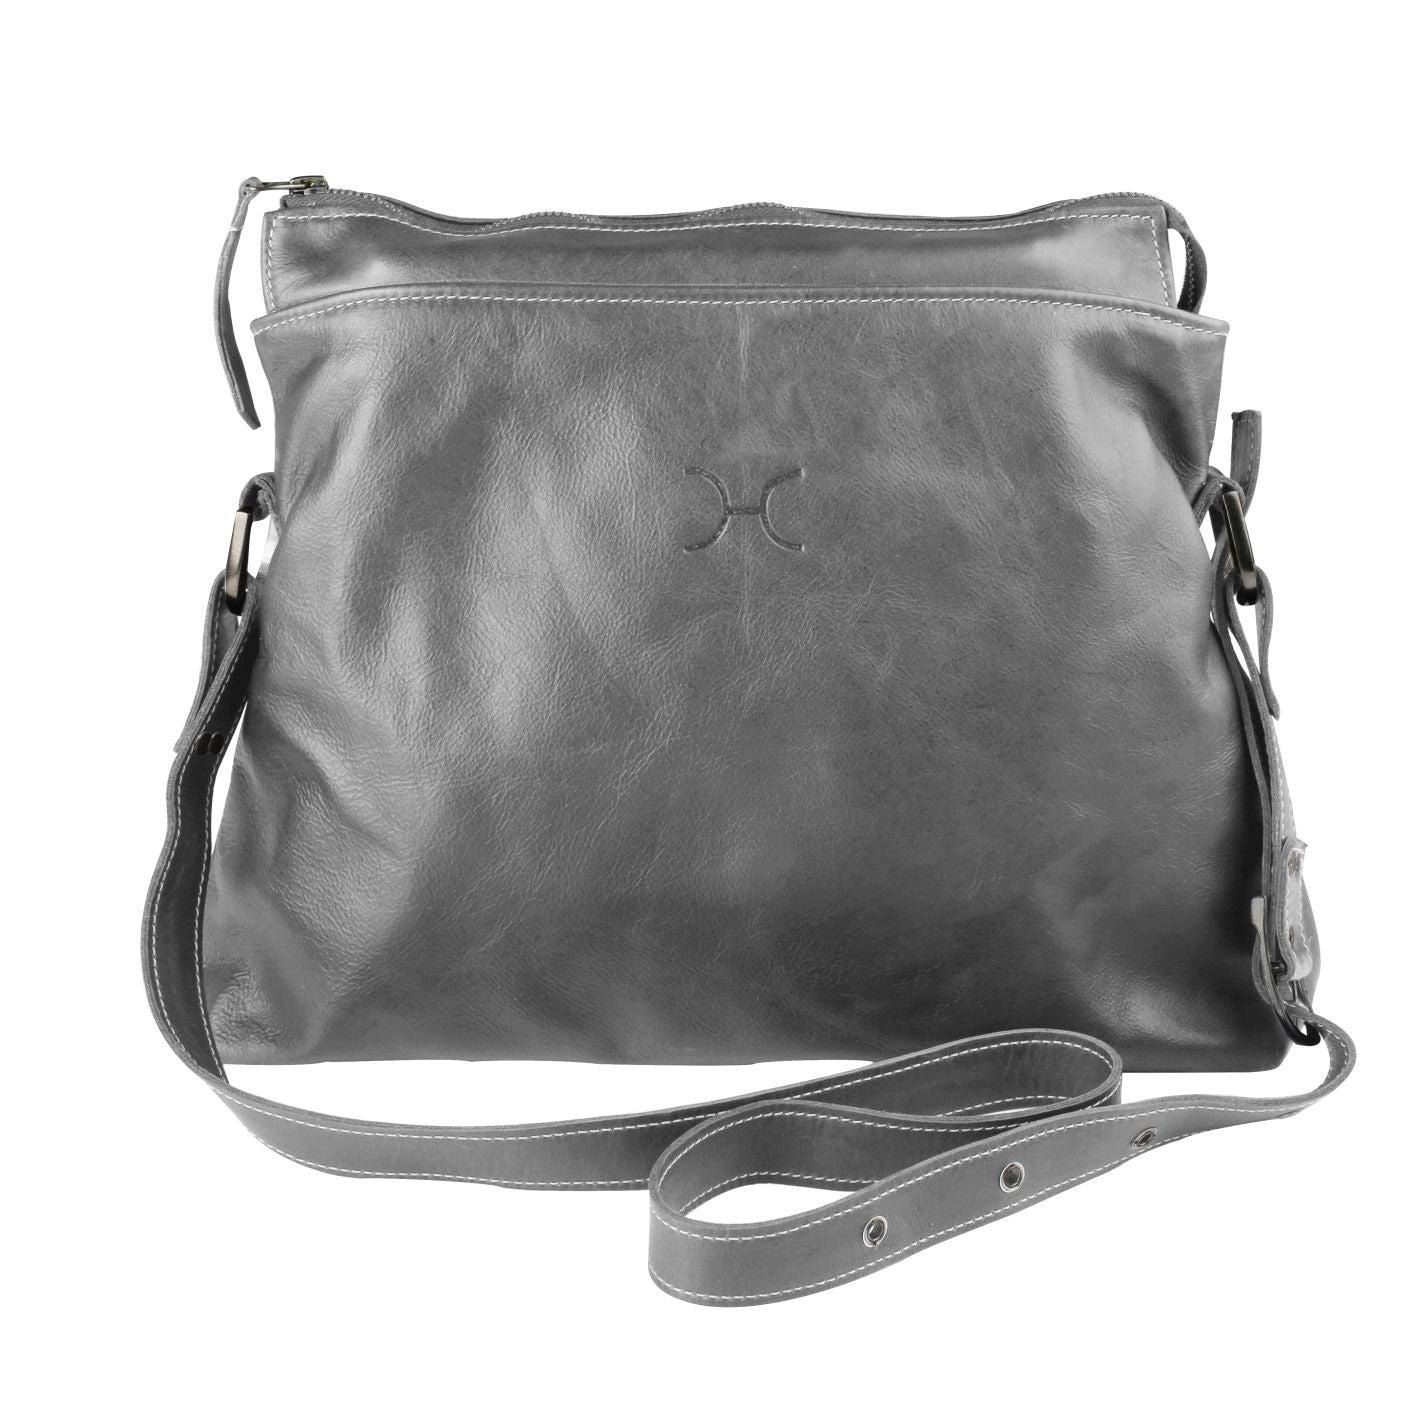 Thandana Messenger Boho Sling Bag - Grey - Zufrique Boutique